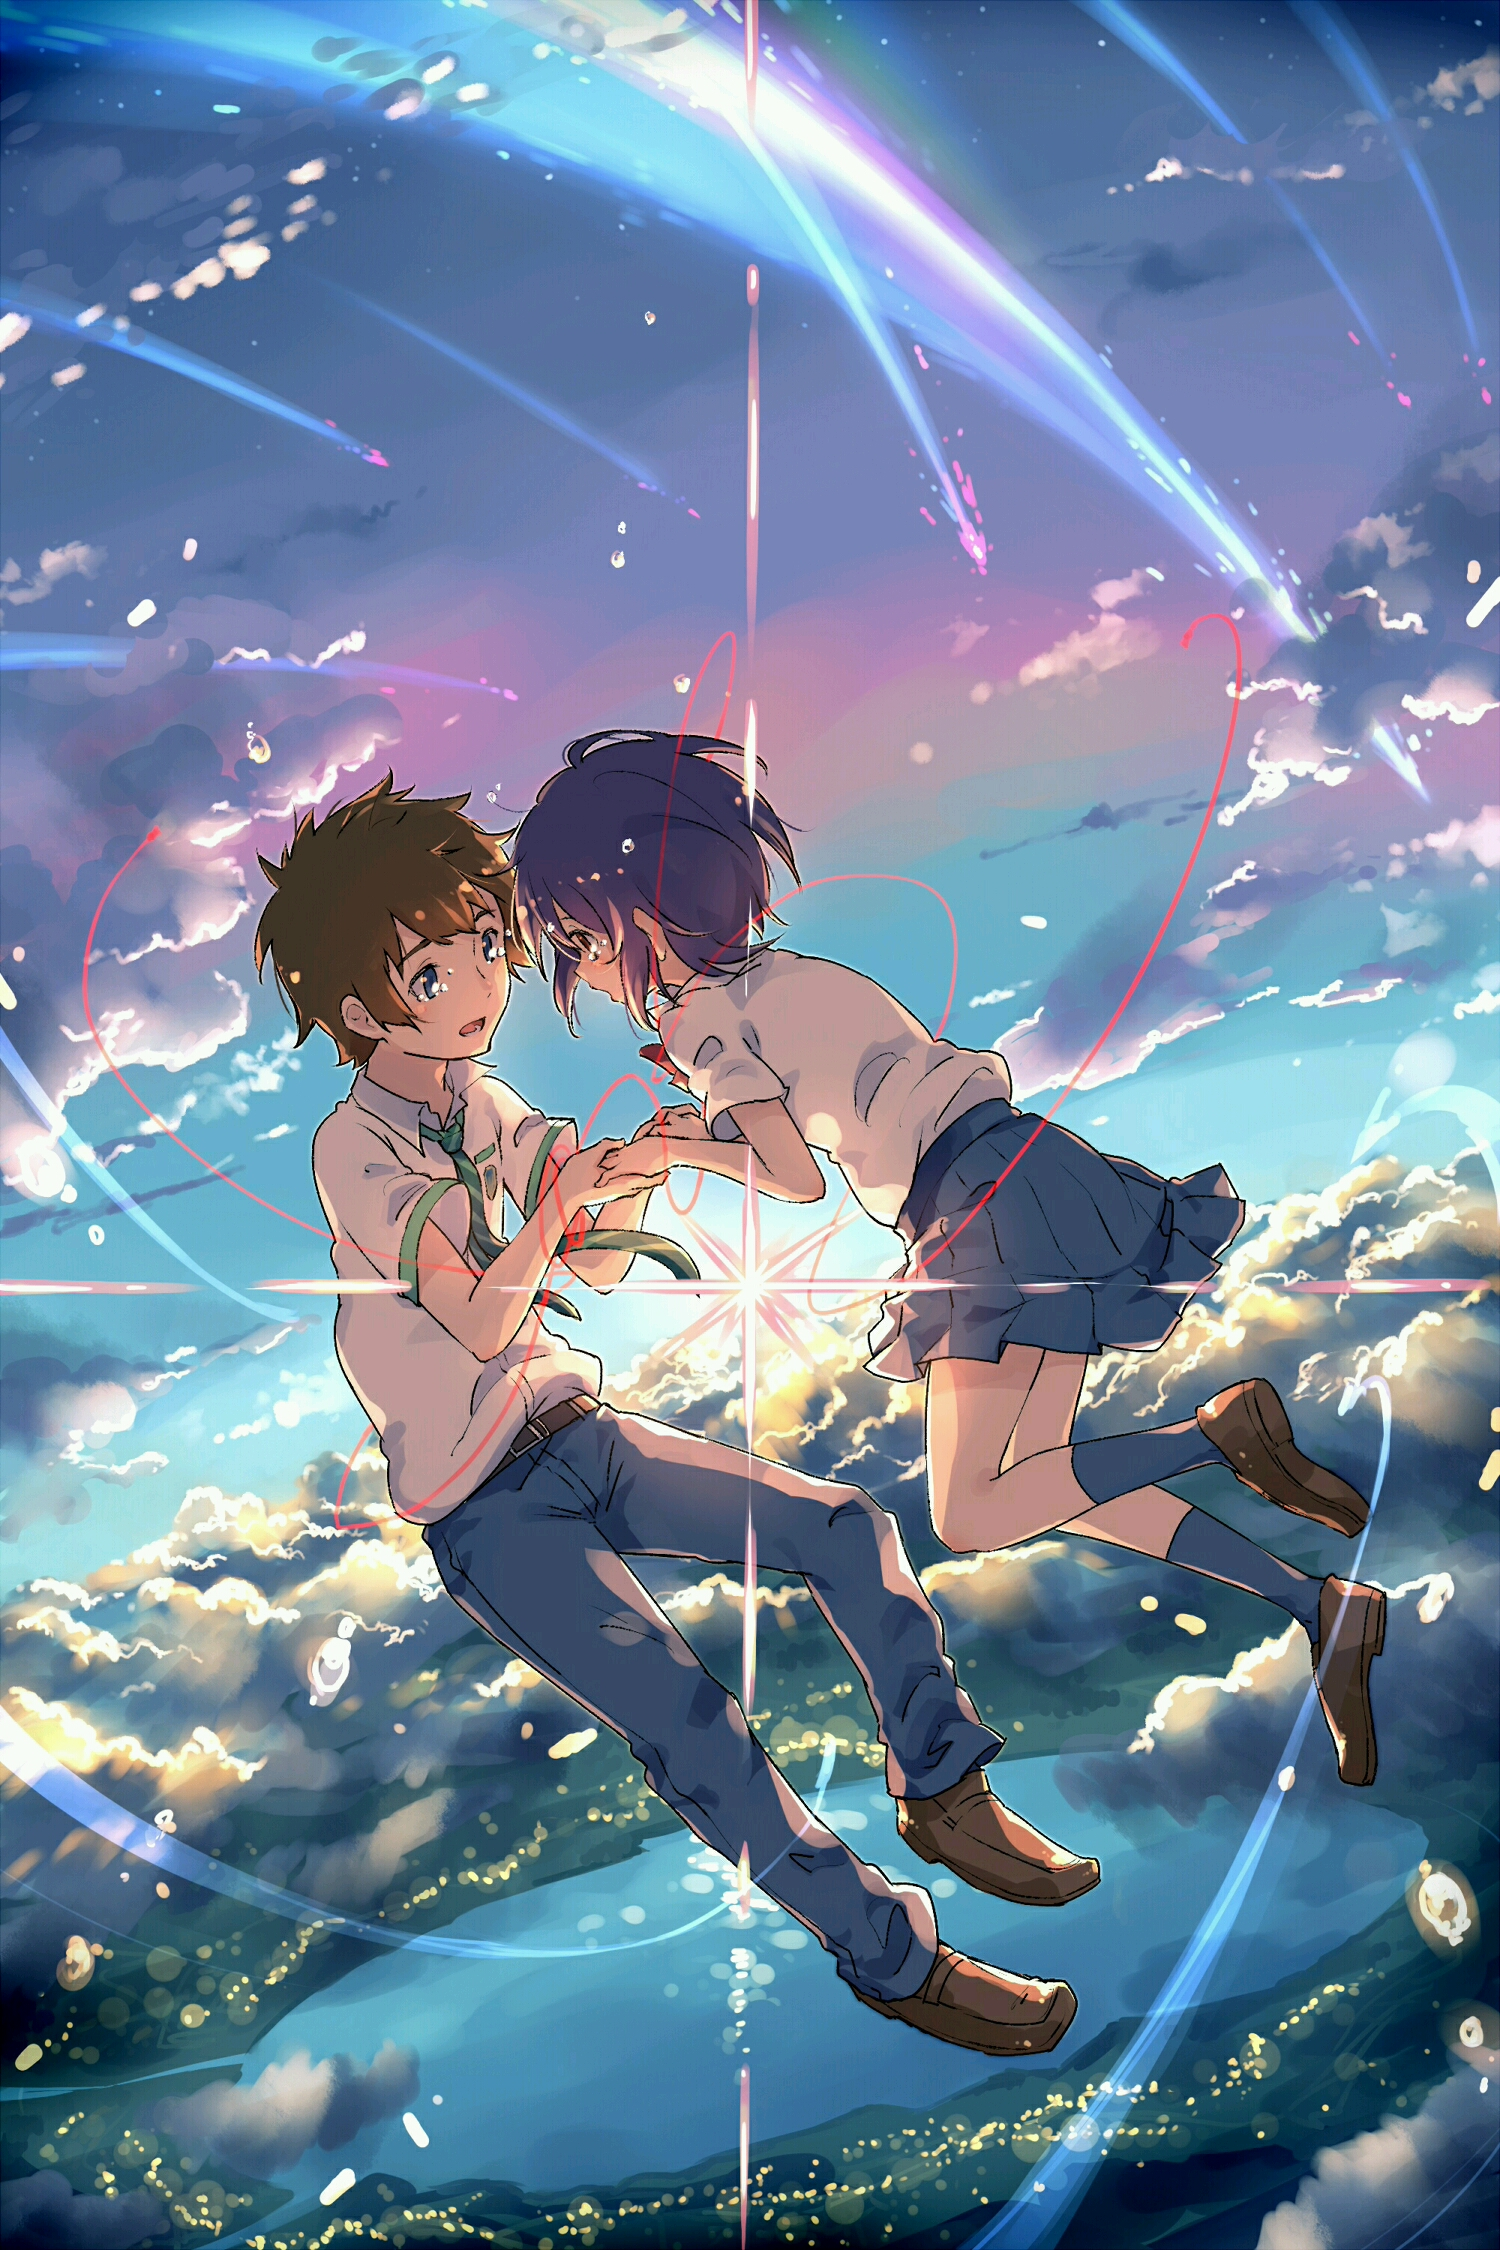 Kimi No Na Wa Your Name Mobile Wallpaper Zerochan Anime